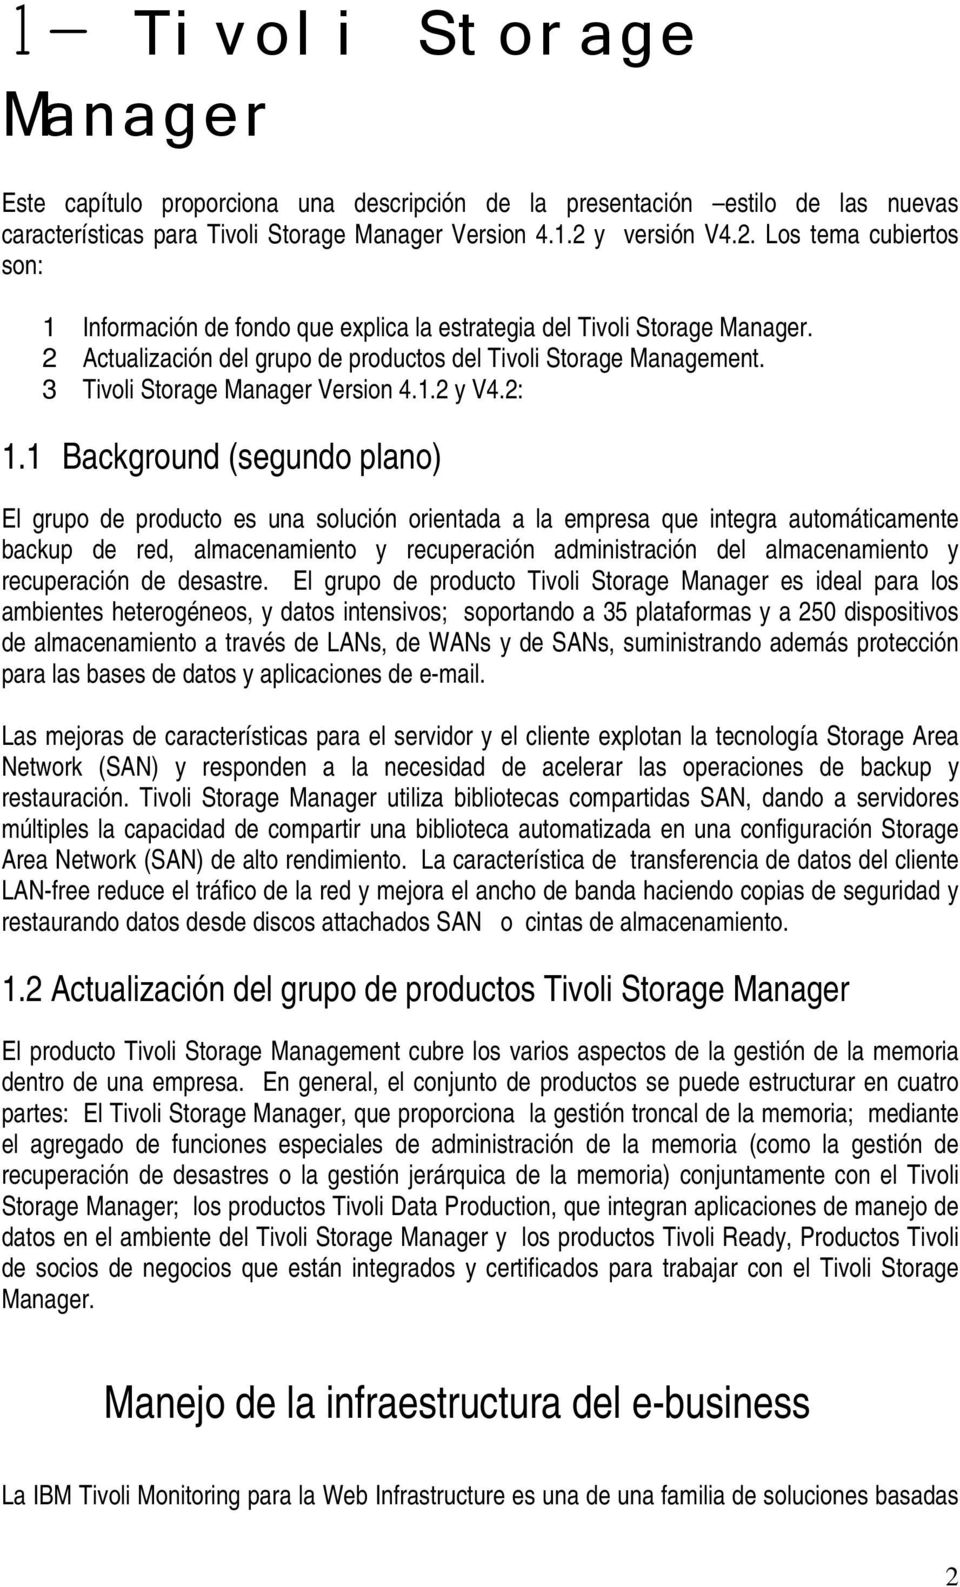 3 Tivoli Storage Manager Version 4.1.2 y V4.2: 1.